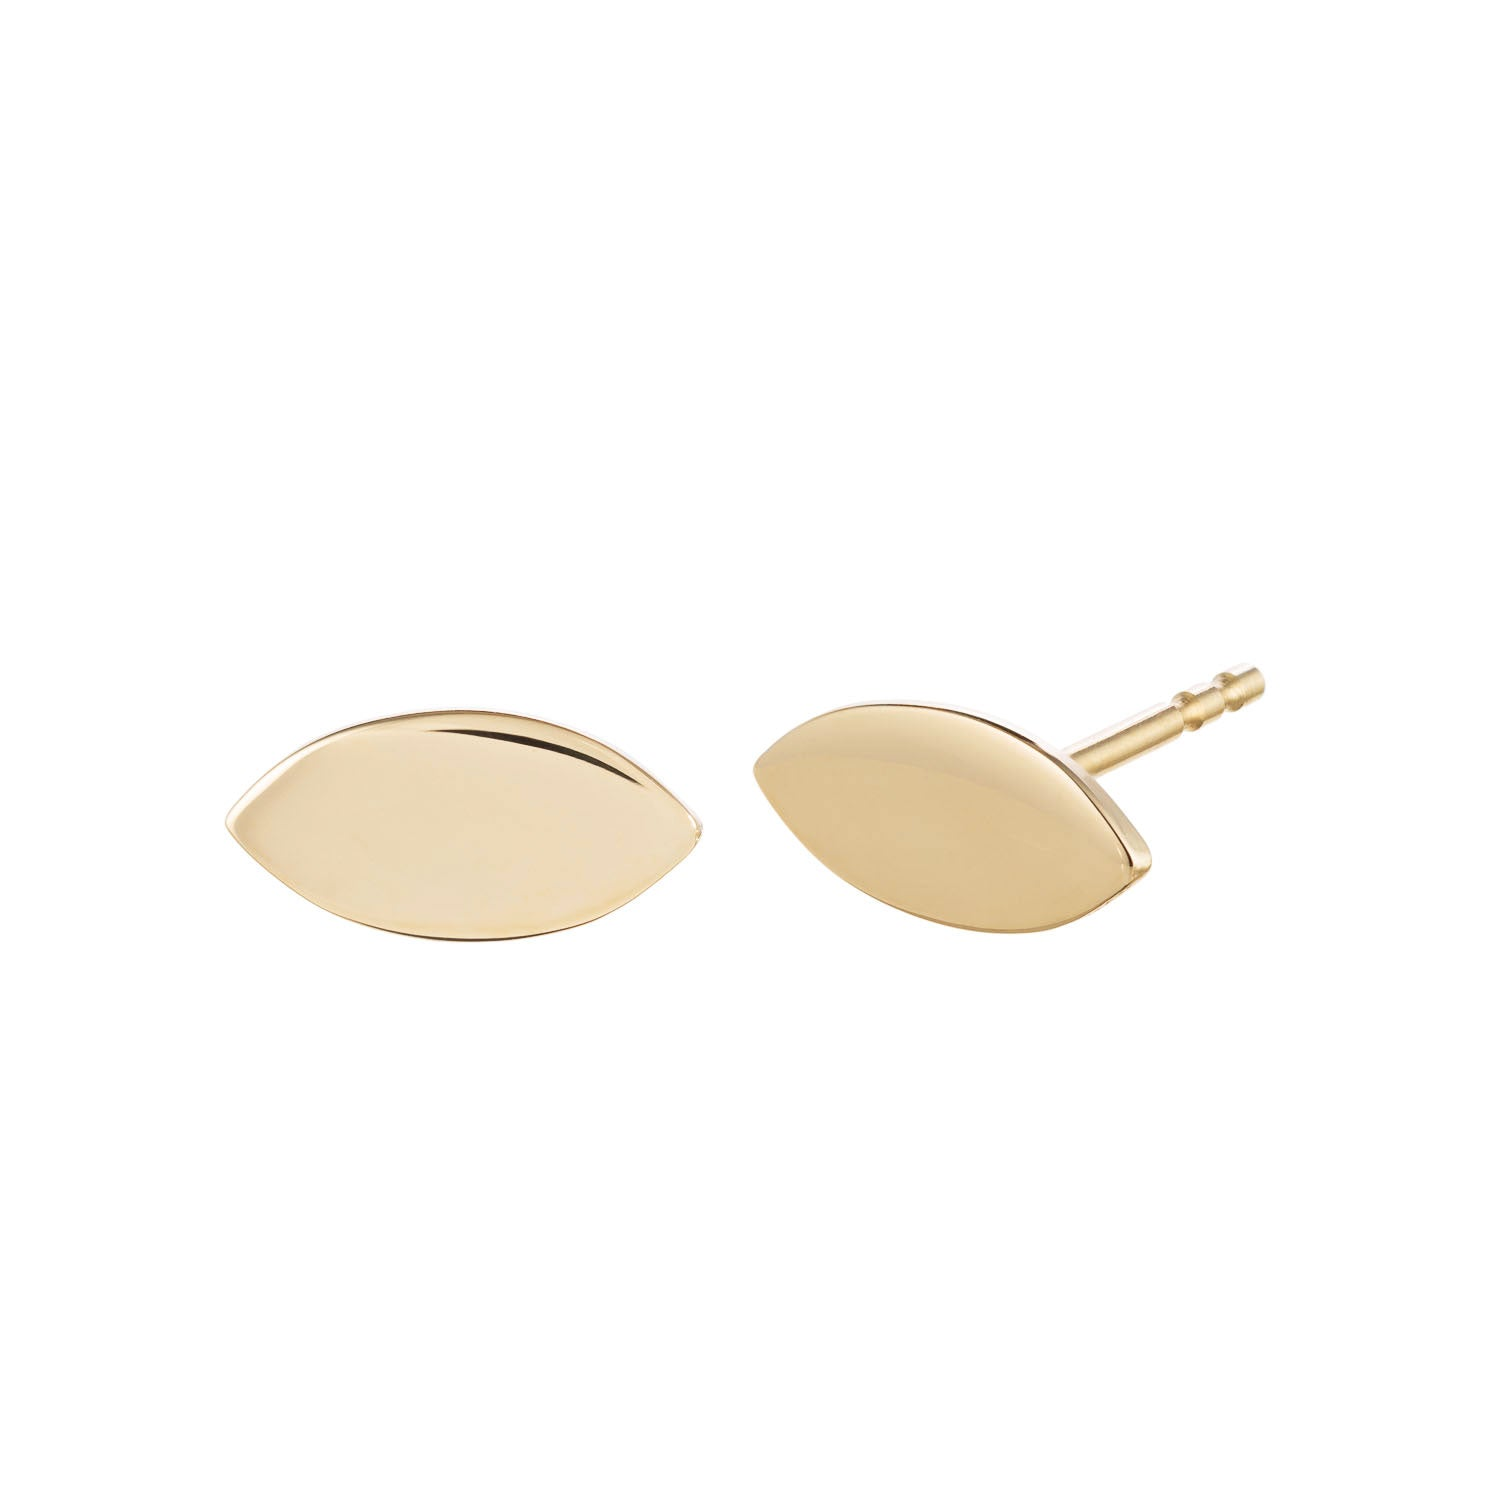 14k Yellow gold leaf shaped stud earrings by Valerie Madison